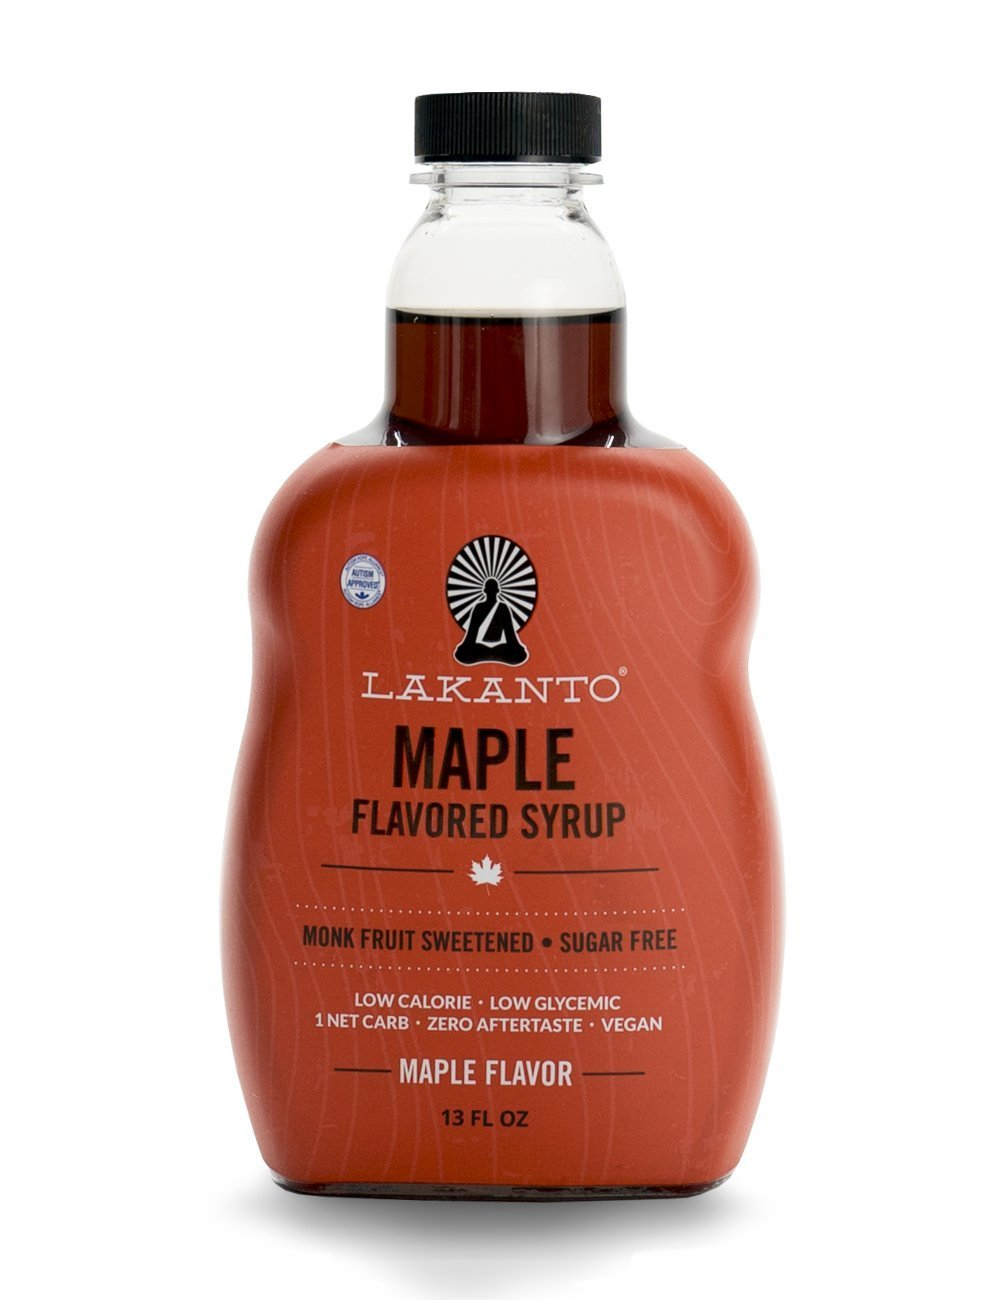 Lakanto Maple Flavored Sugar-Free Syrup, 1 Net Carb (Maple Syrup, 13 oz)